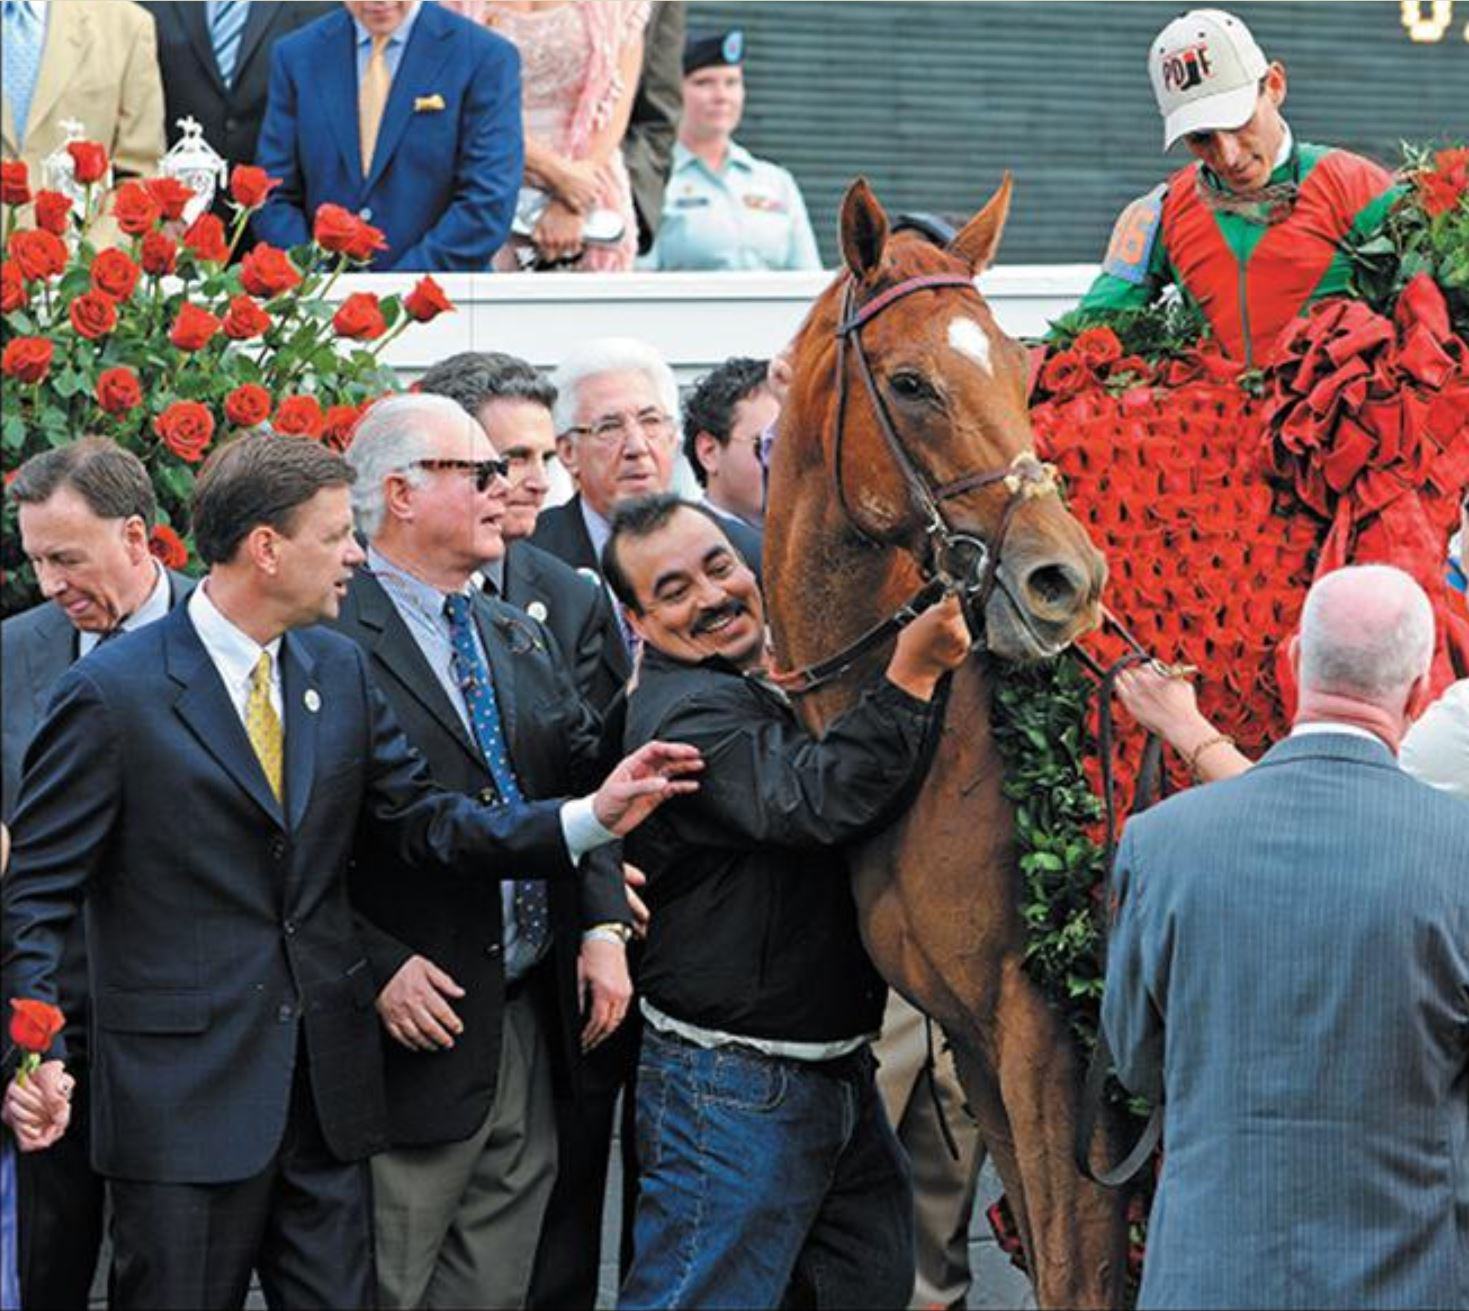 Animal Kingdom Derby winners' circle